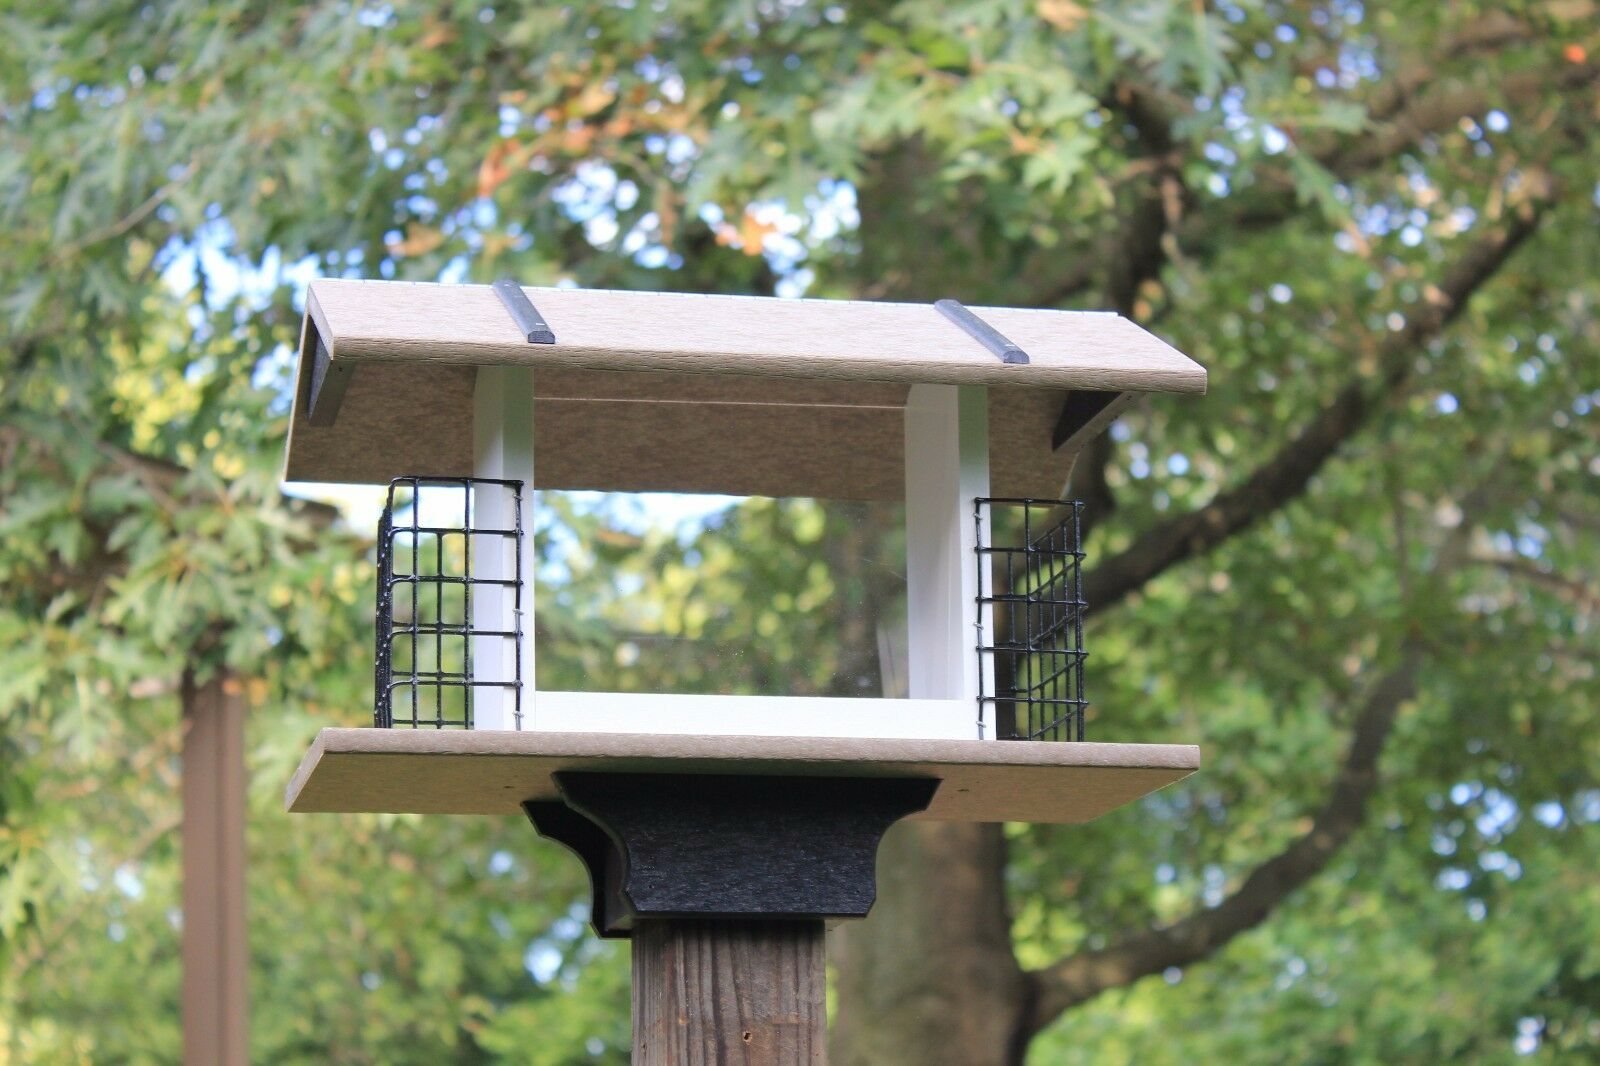 Accentua ® Avalon Bird Feeder, 17 in. by 11 in. Rectangle